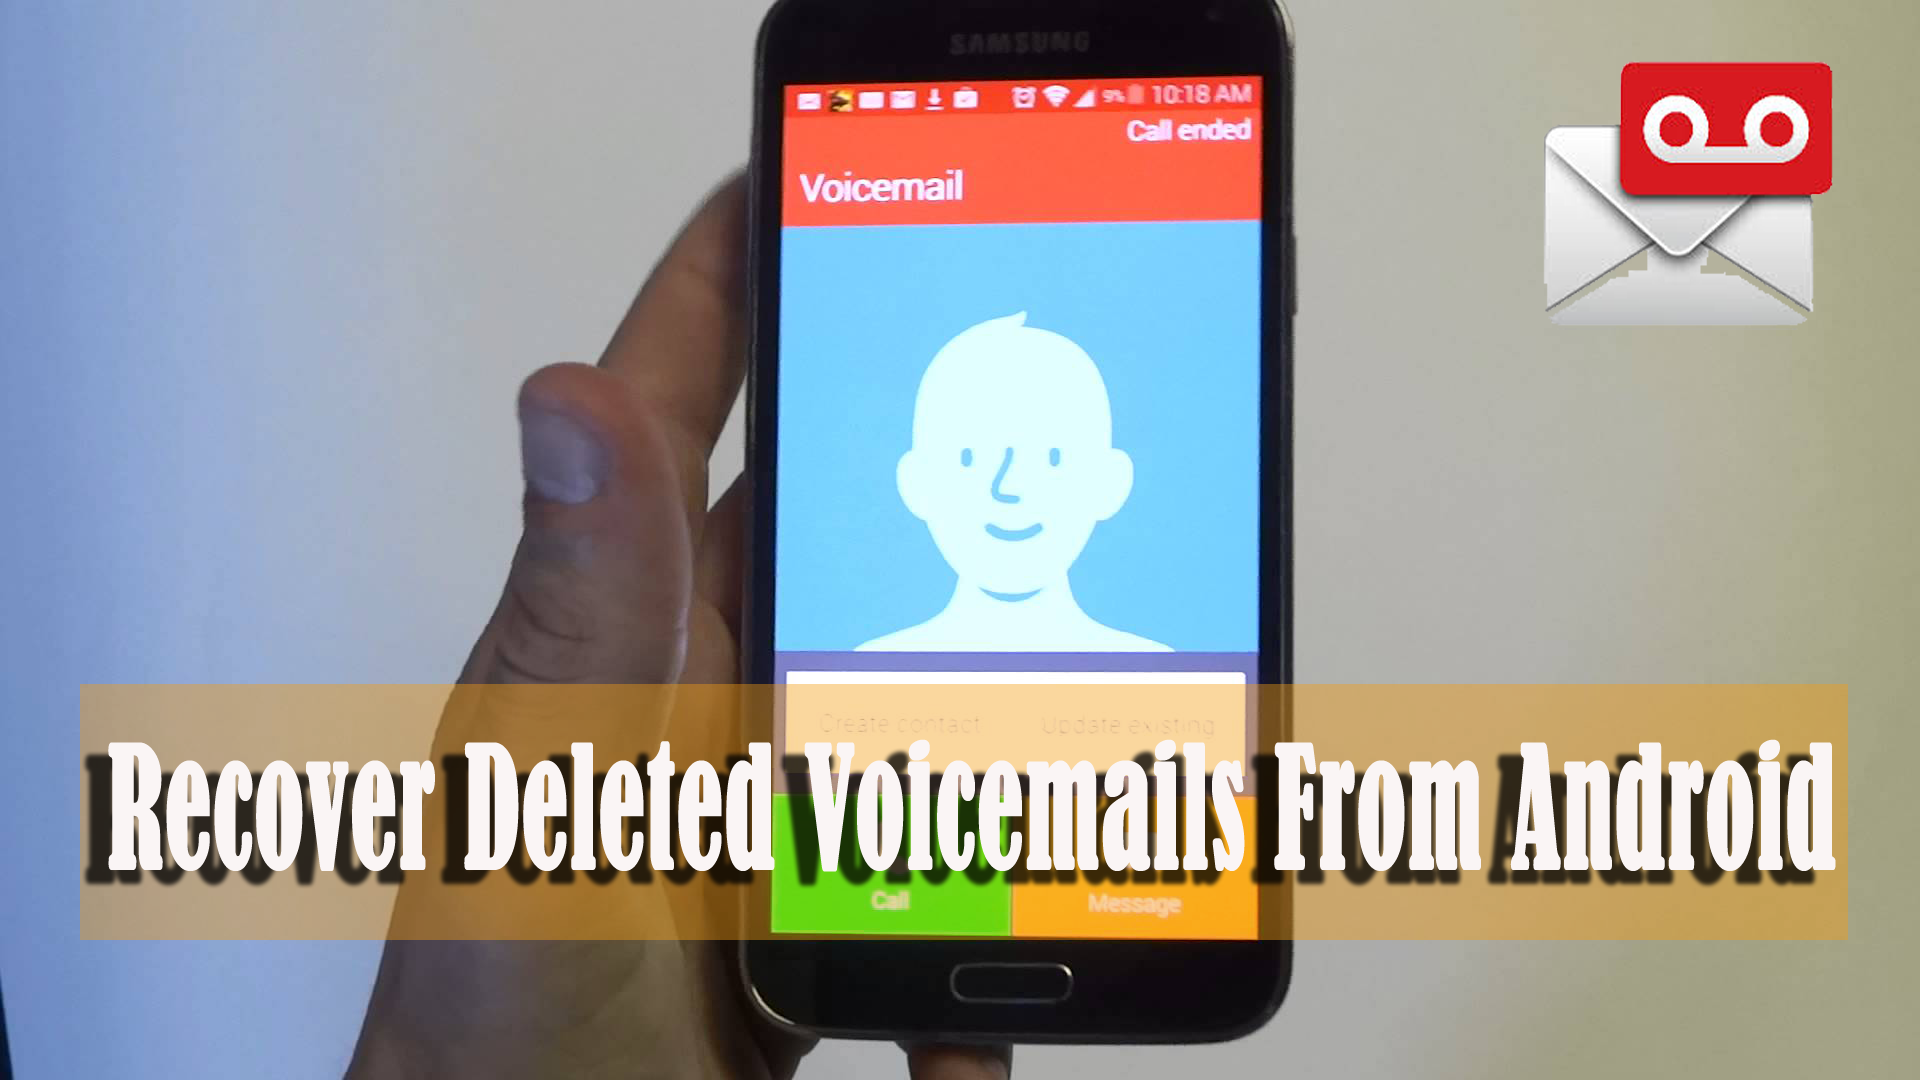 Useful Guide]- How to Recover Deleted Voicemails From Android